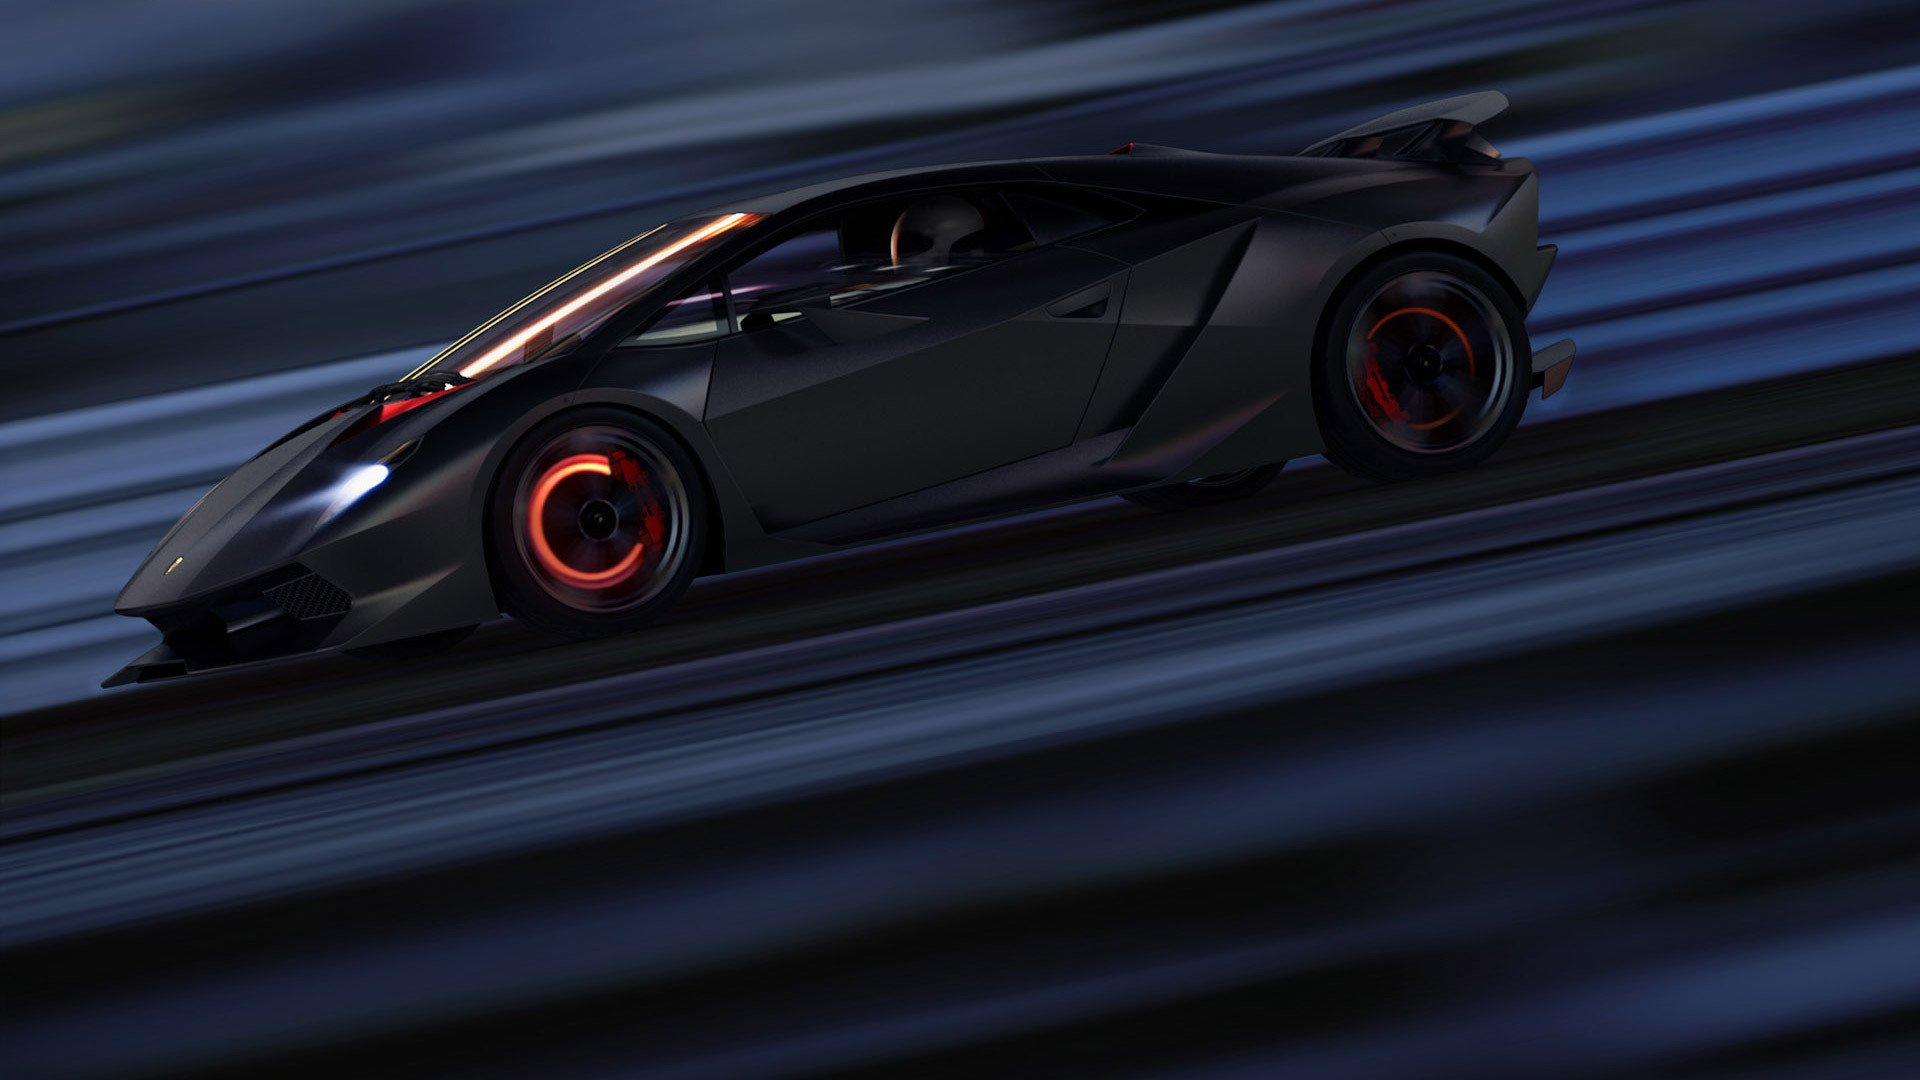 9 Lamborghini Sesto Elemento Hd Wallpapers Background Images